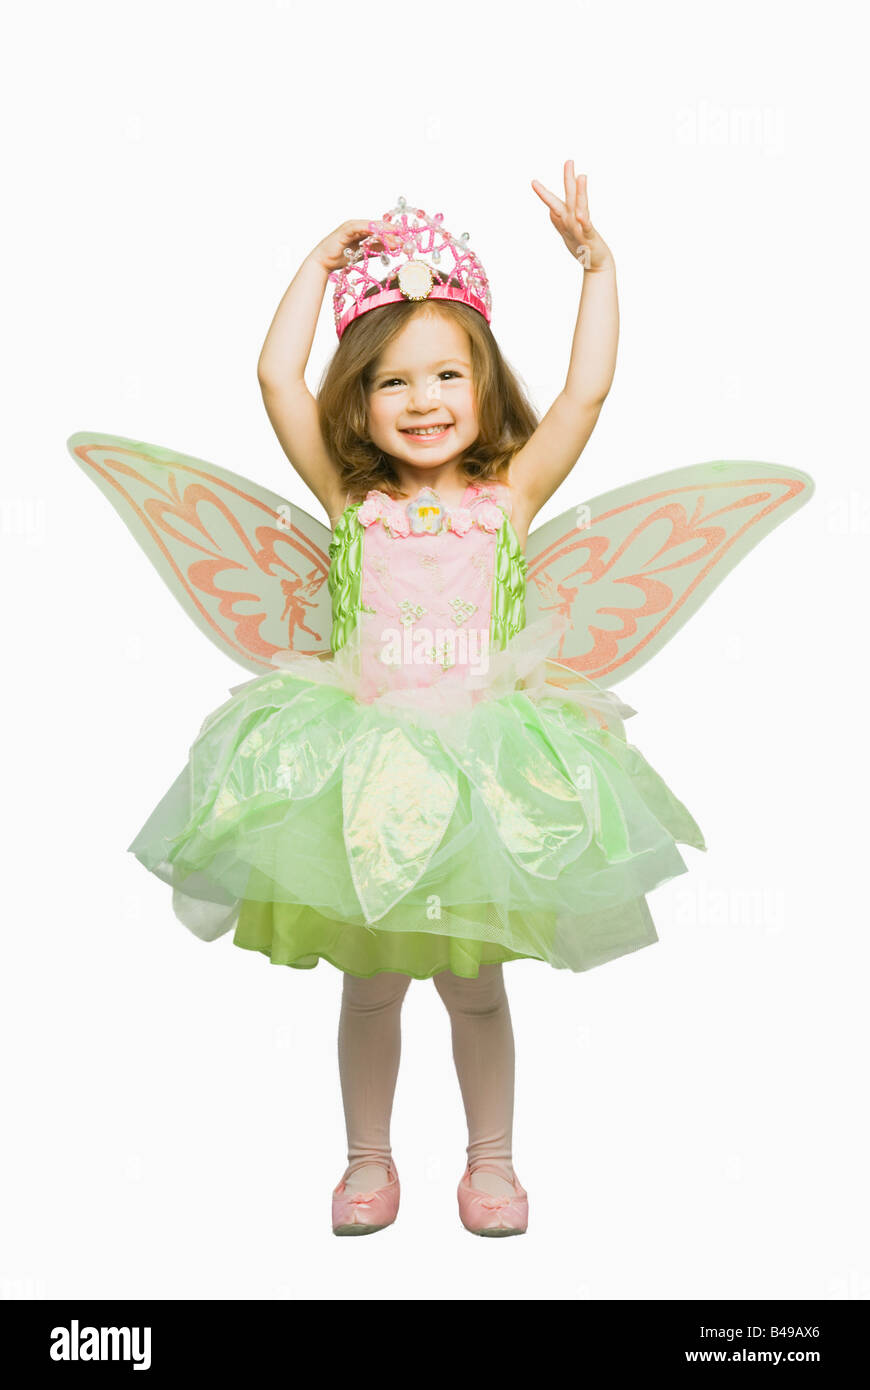 Girl in fairy outfit - Stock Image